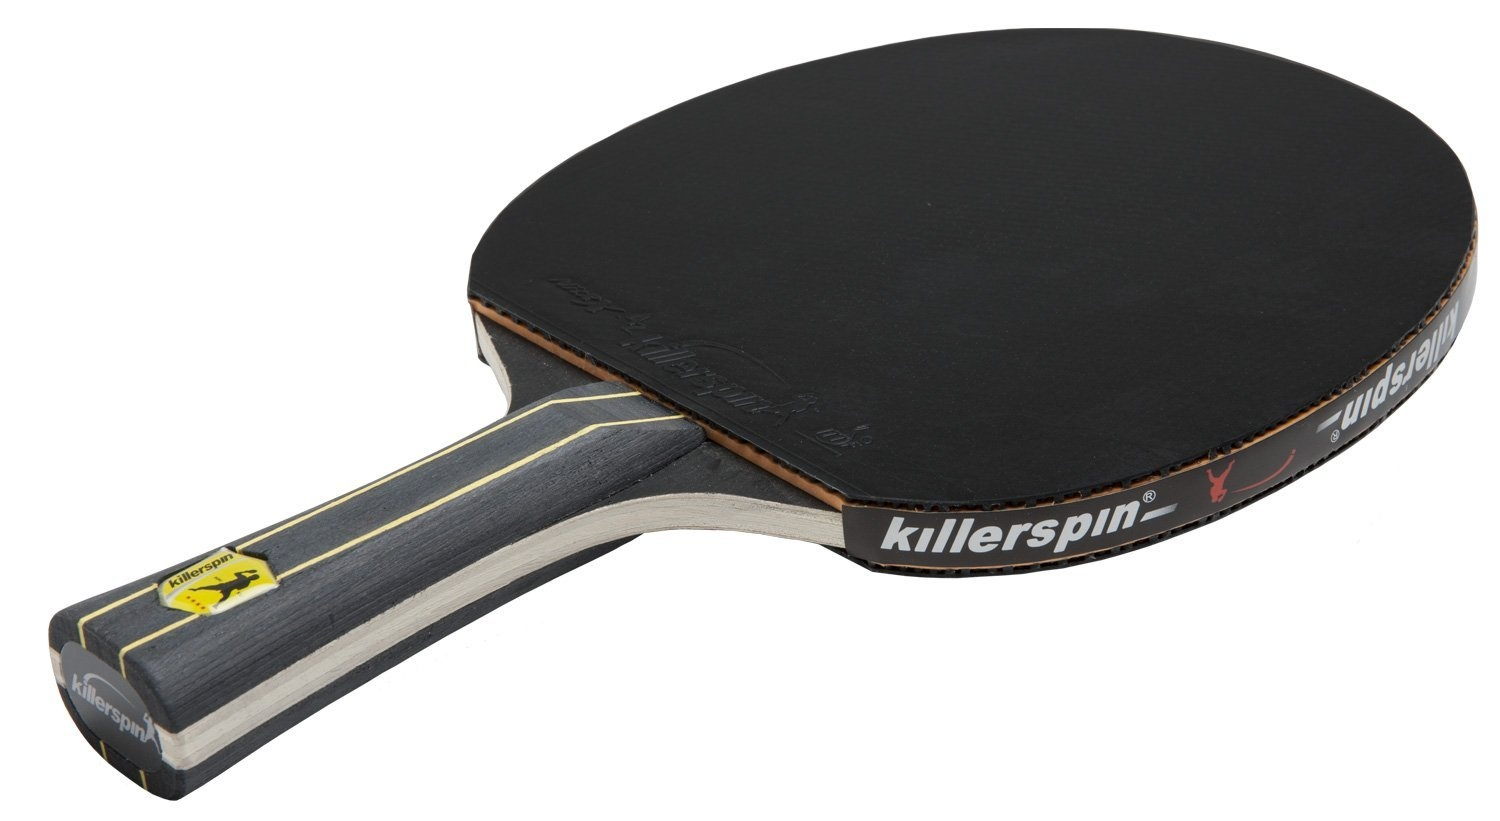 ae63781d92 Killerspin  Buy Online from Fishpond.co.nz